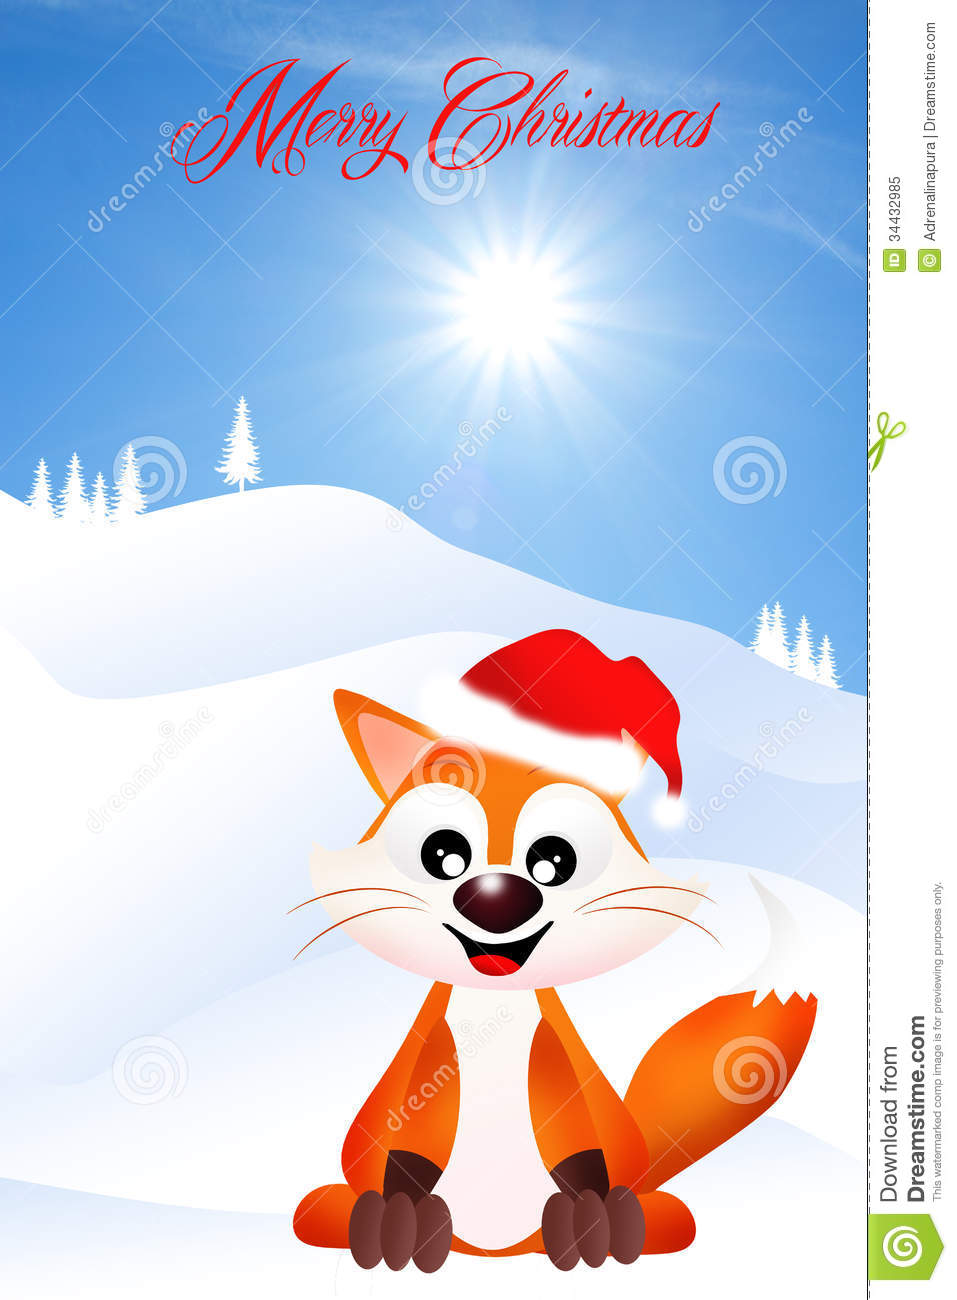 Red Fox clipart christmas #6